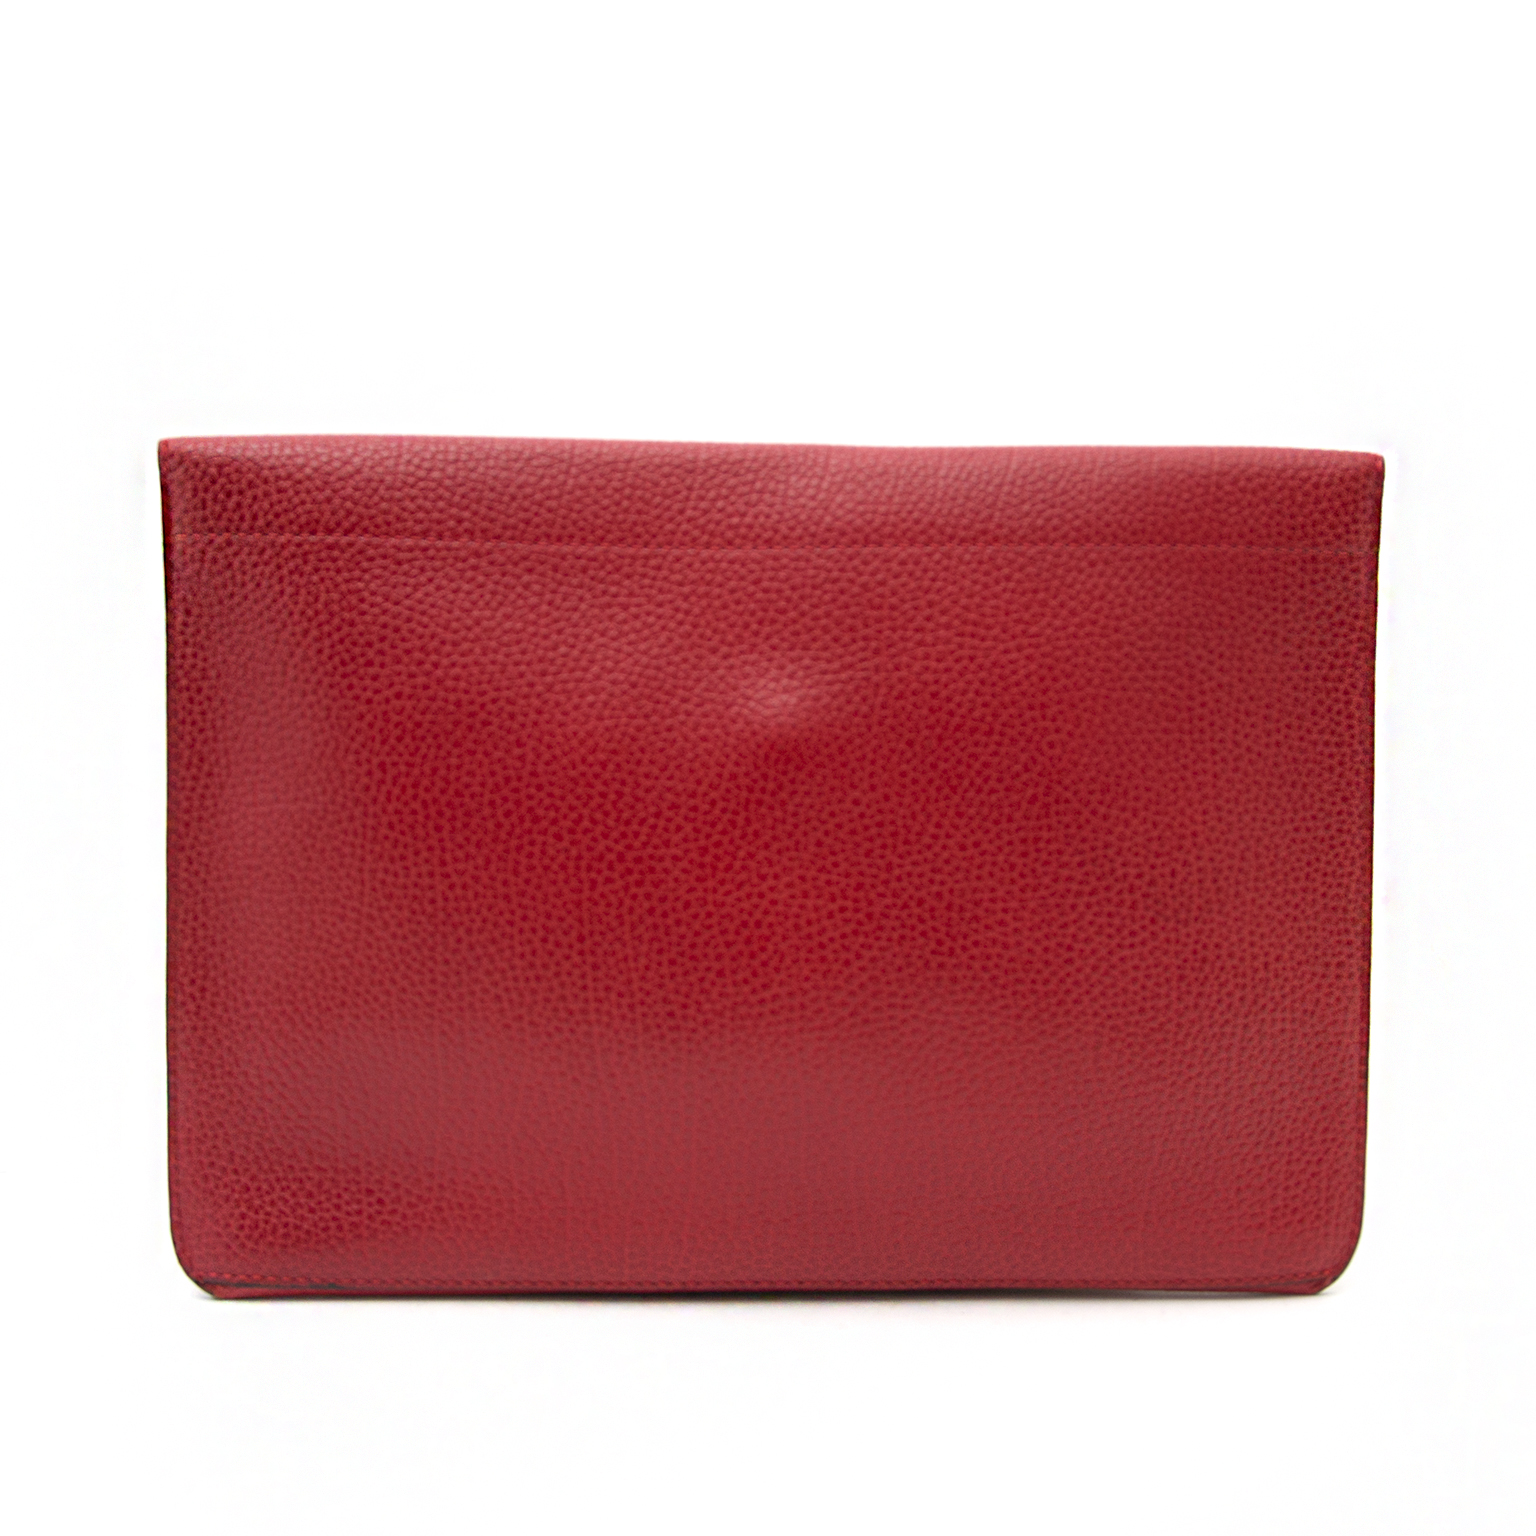 Delvaux Red Leather Envelope Clutch for sale in Belgium Antwerp at Labellov, safe and secure shopping and worldwide shipping.